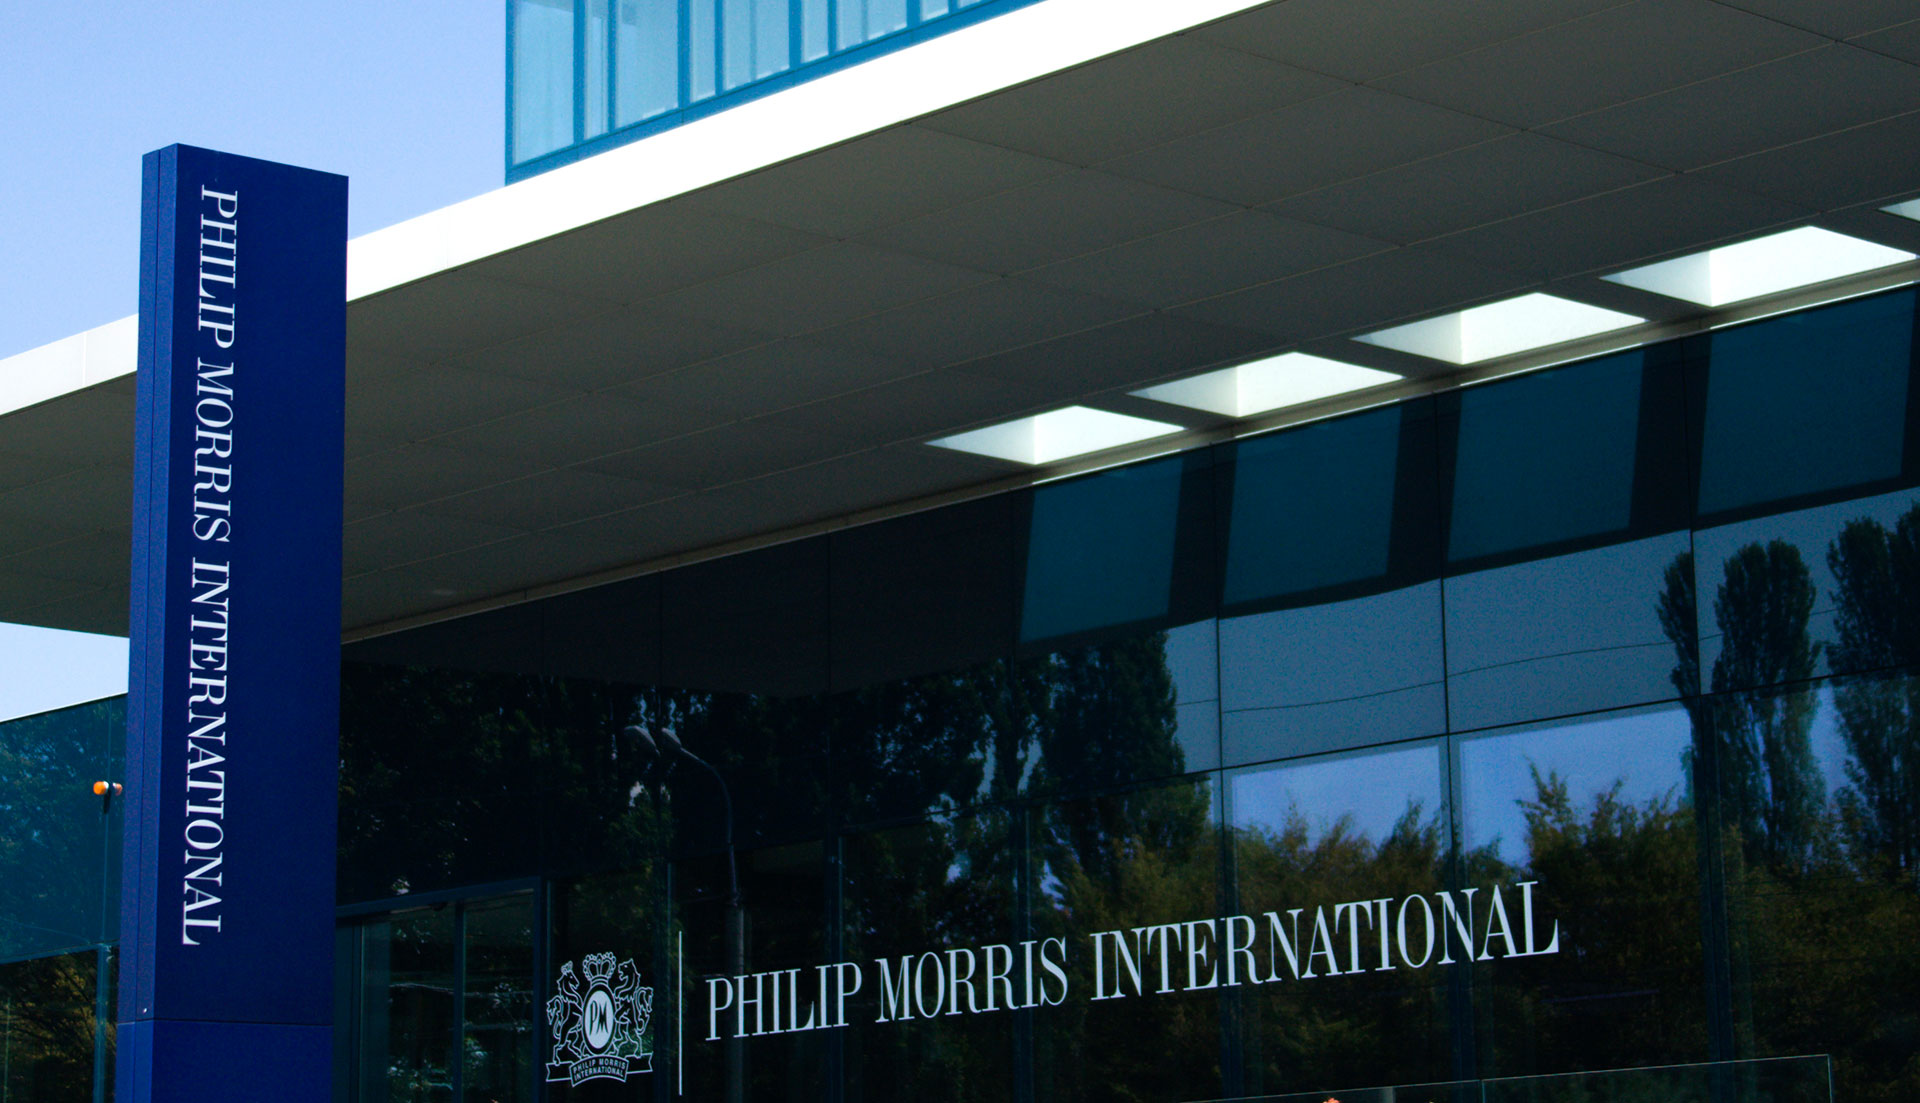 Philip Morris International's operational headquarters. Credit: Reuters/Denis Balibouse/File Photo